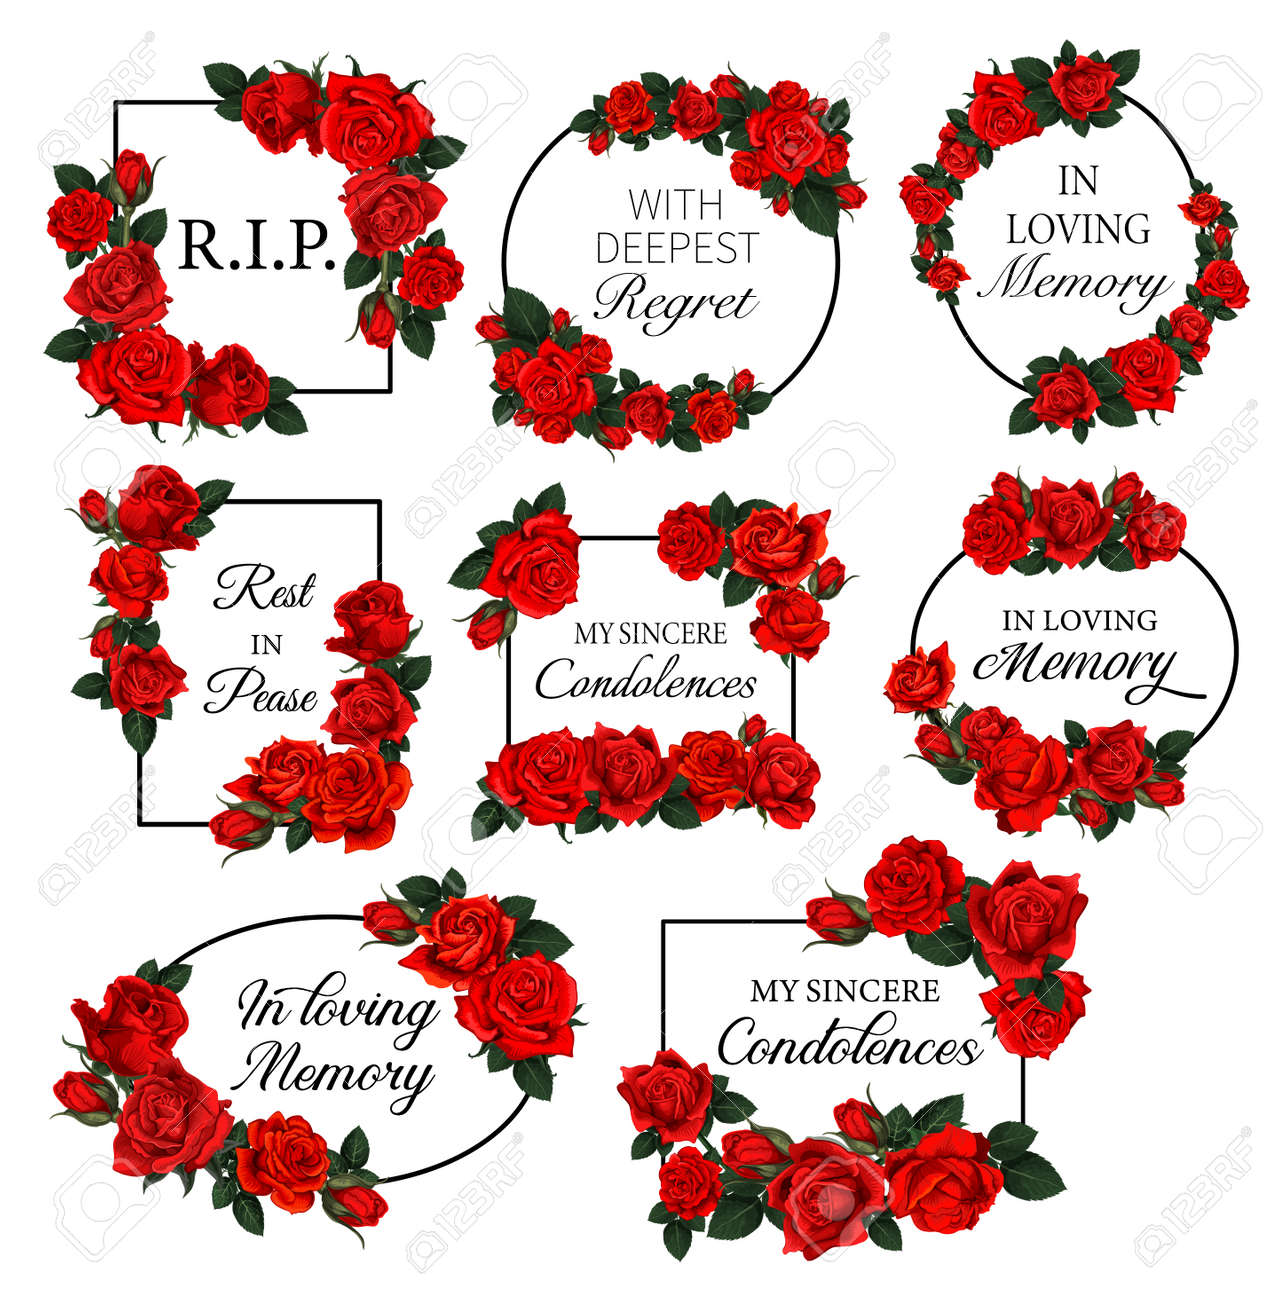 Funereal frames with red roses flowers. Obituary vector round and square frames with RIP res in peace, in loving memory condolences and engraved flowers. Funeral cards decorated floral borders - 163862098